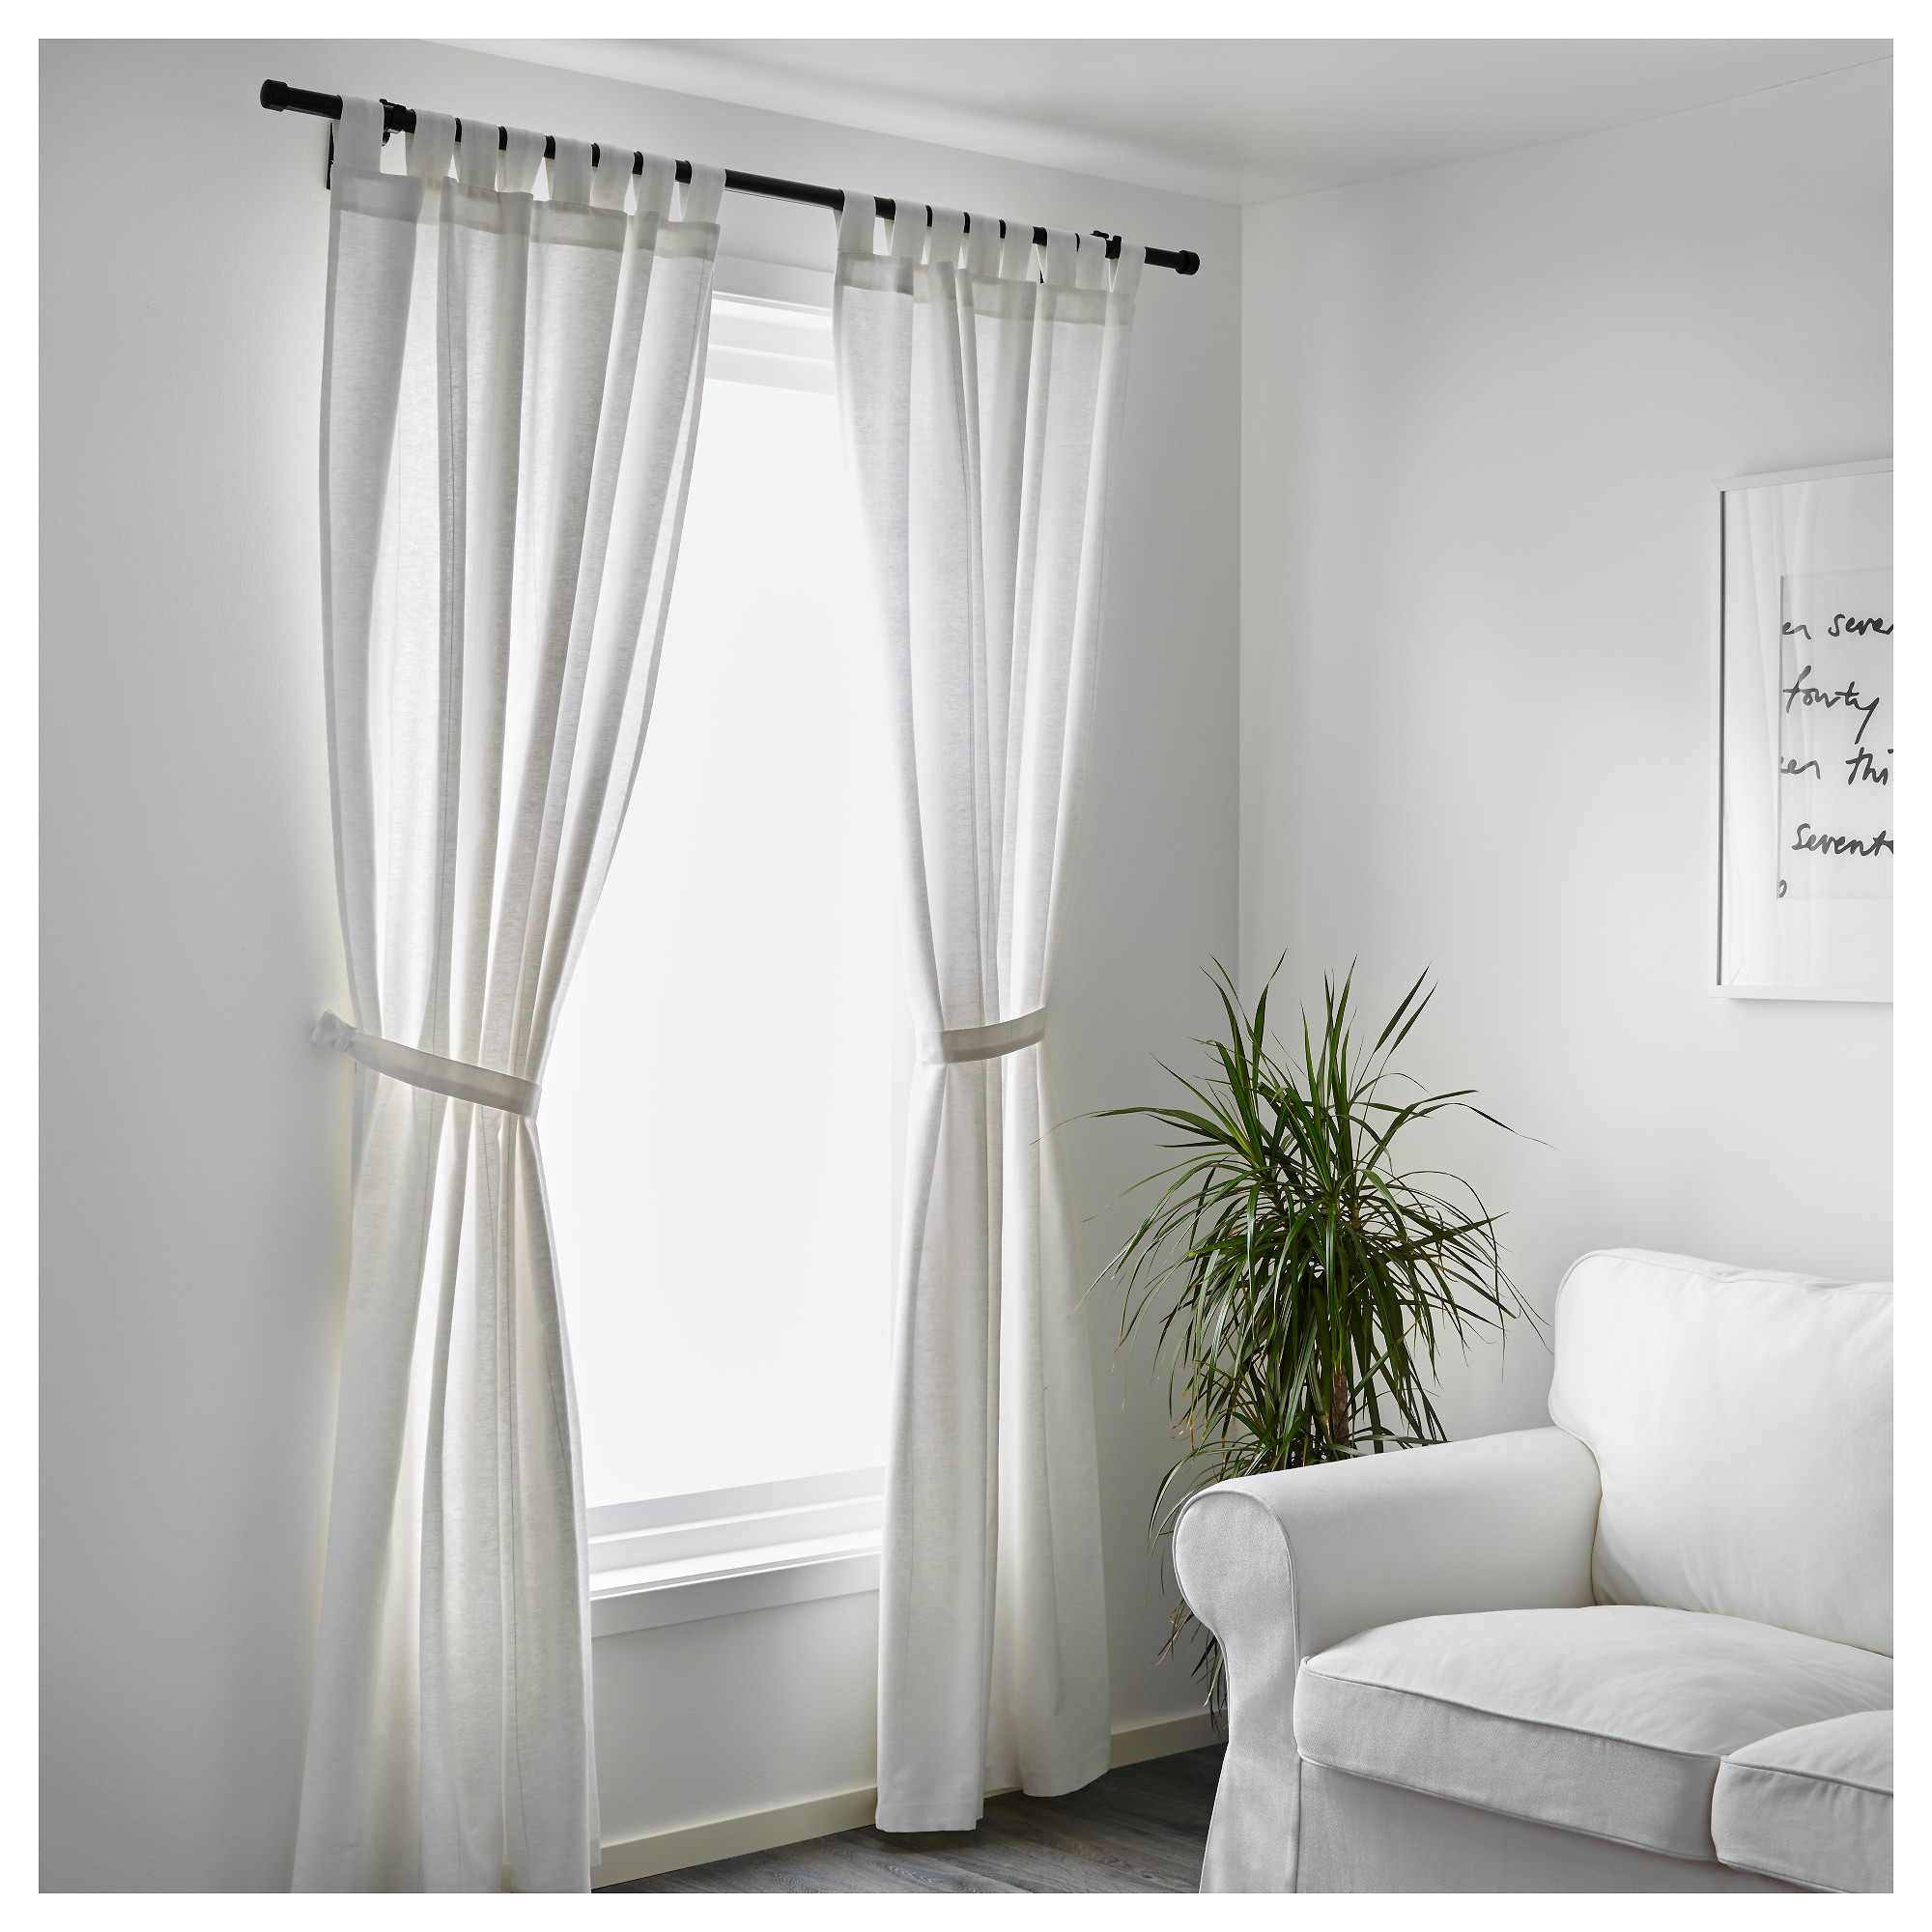 LENDA Curtains With Tie Backs 1 Pair